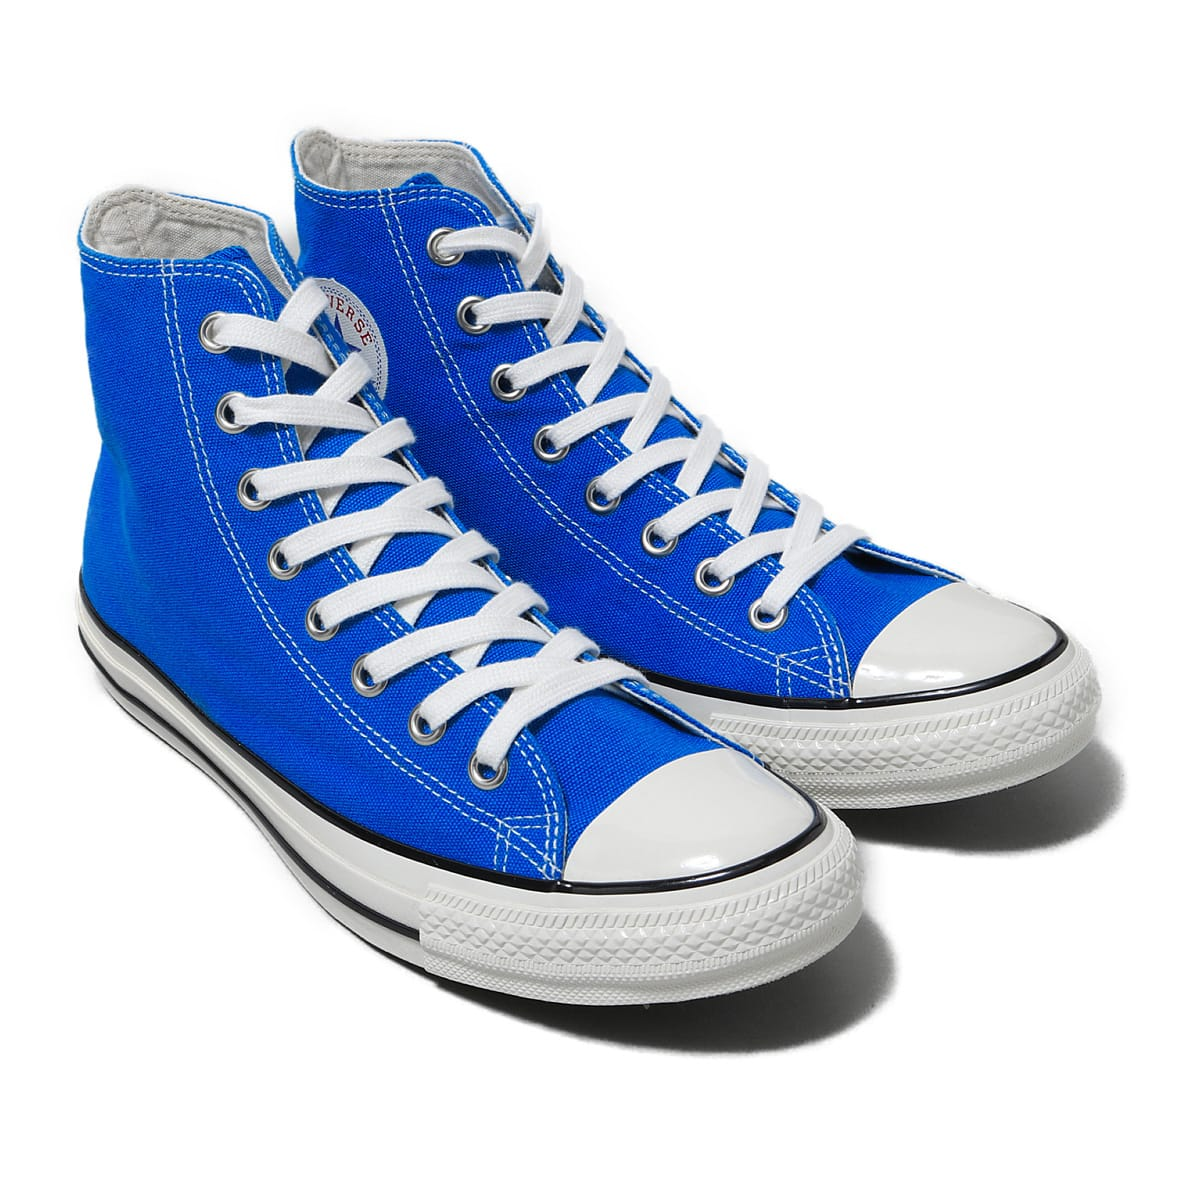 CONVERSE ALL STAR US NEONCOLORS HI SKY BLUE 20SS-S_photo_large